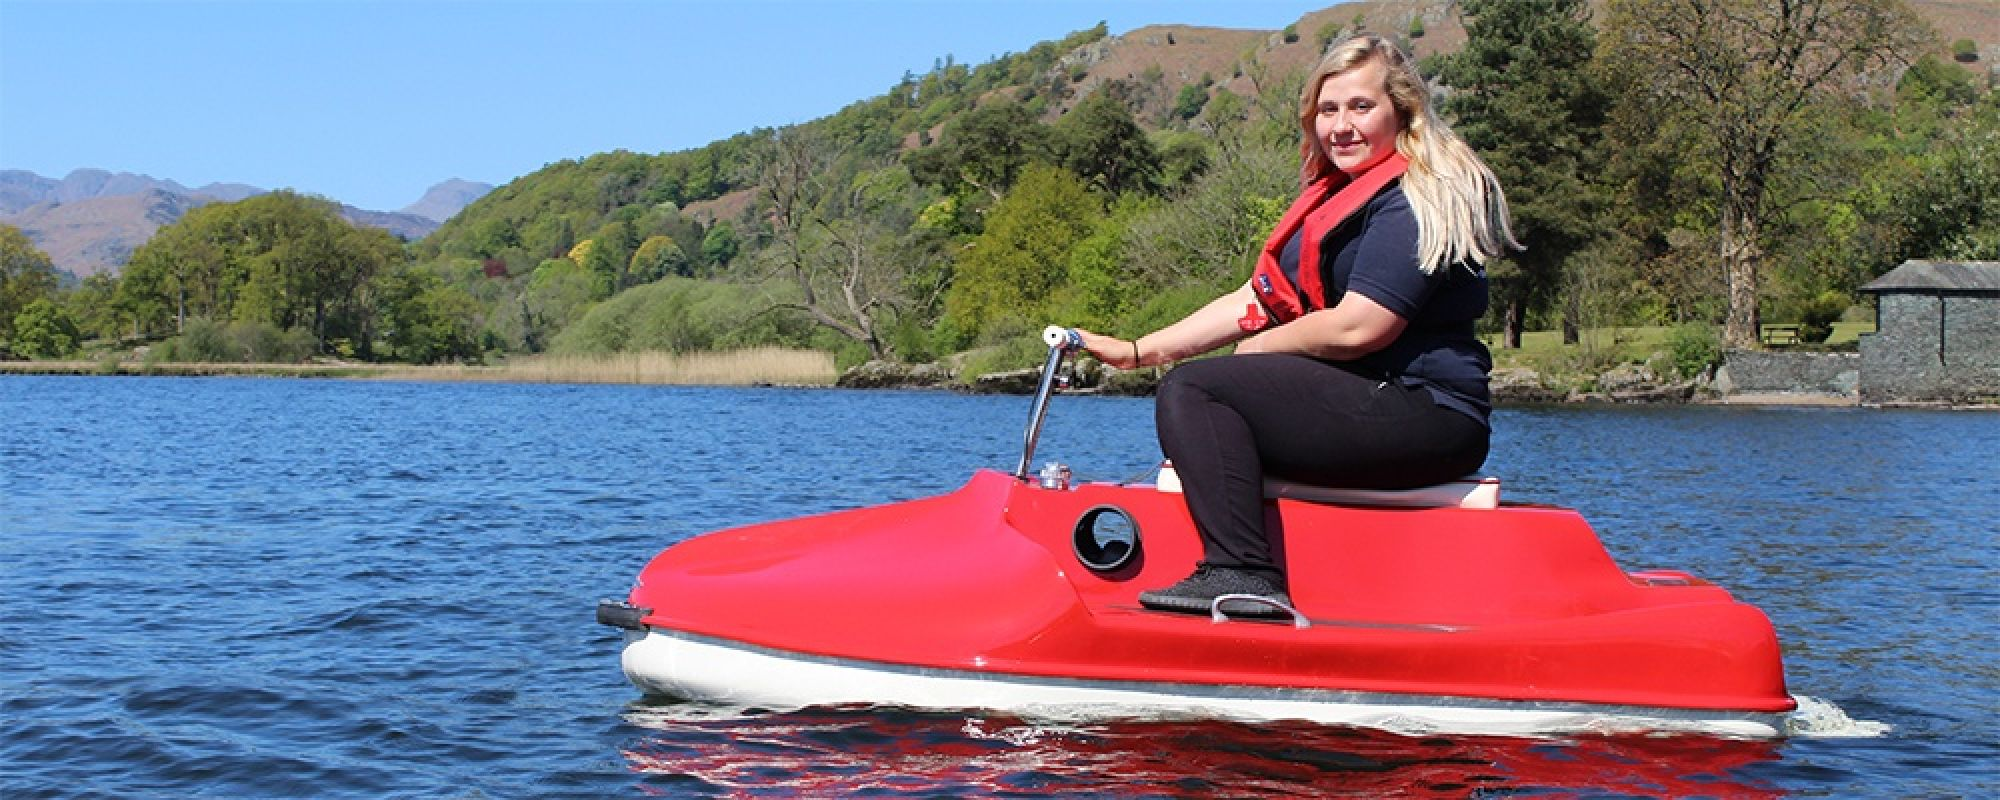 Photo of the restored scooter on Lake Windermere